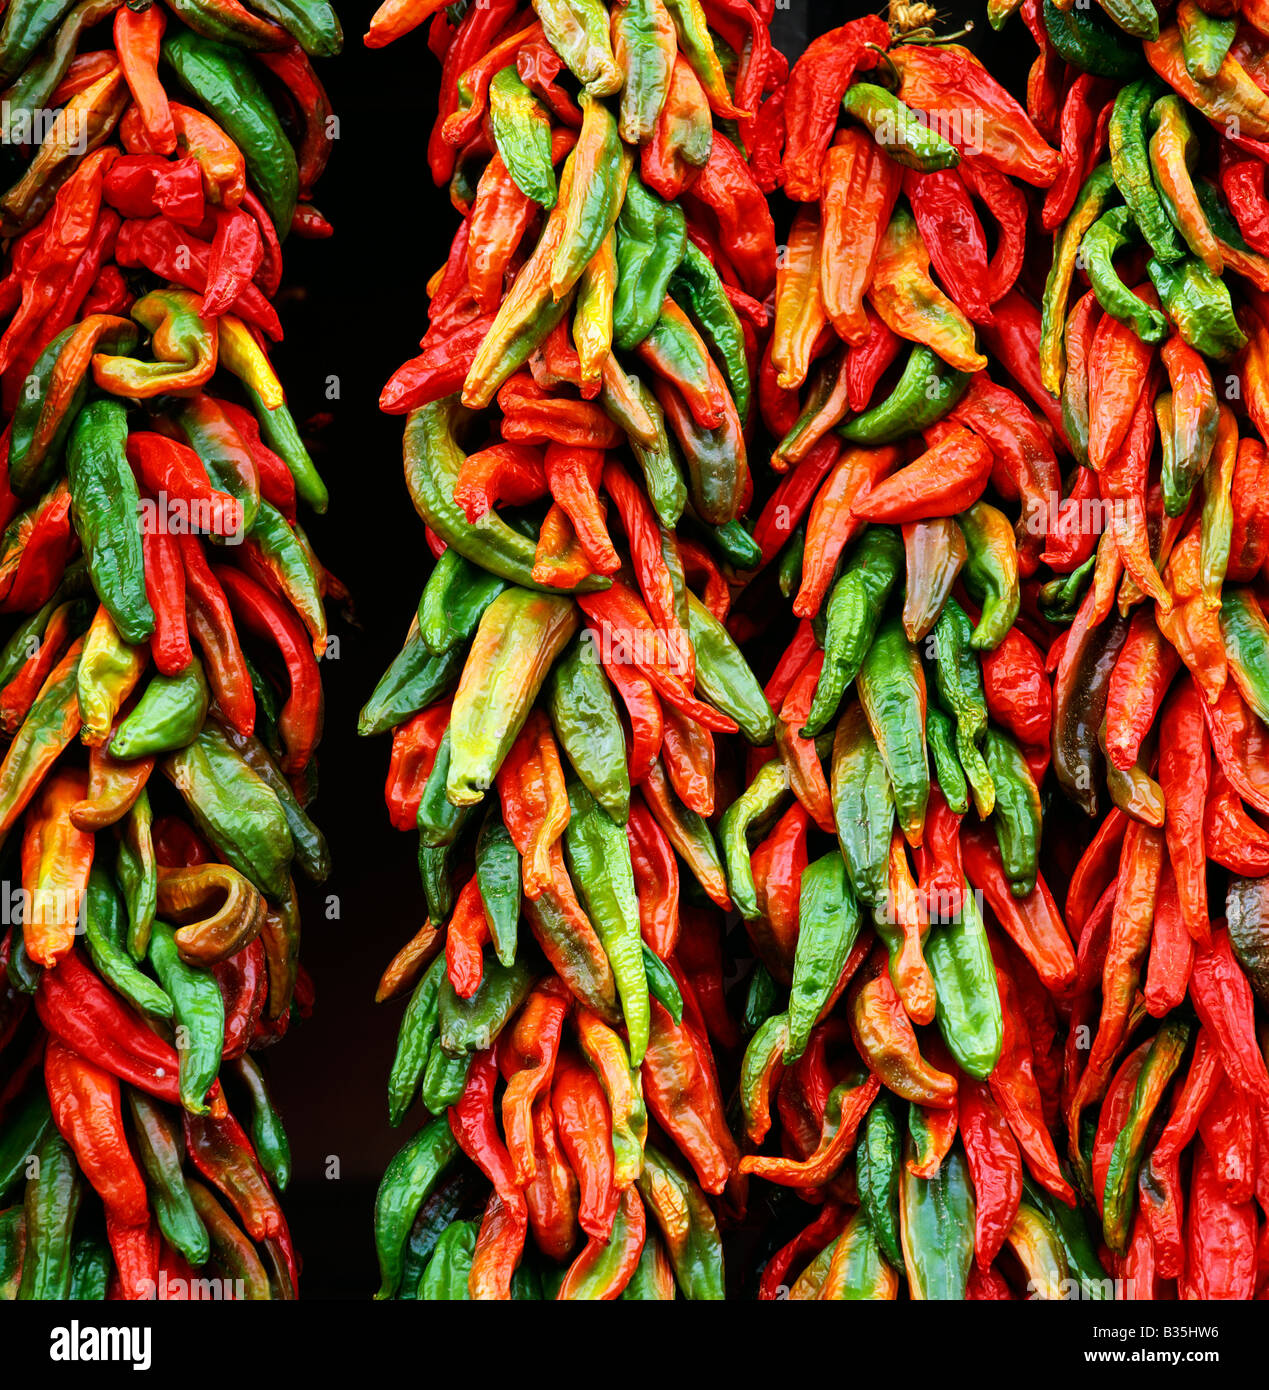 ARTESANO'S; DOWNTOWN STORE DISPLAY OF CHILI PEPPERS, SANTA FE, NEW MEXICO - Stock Image